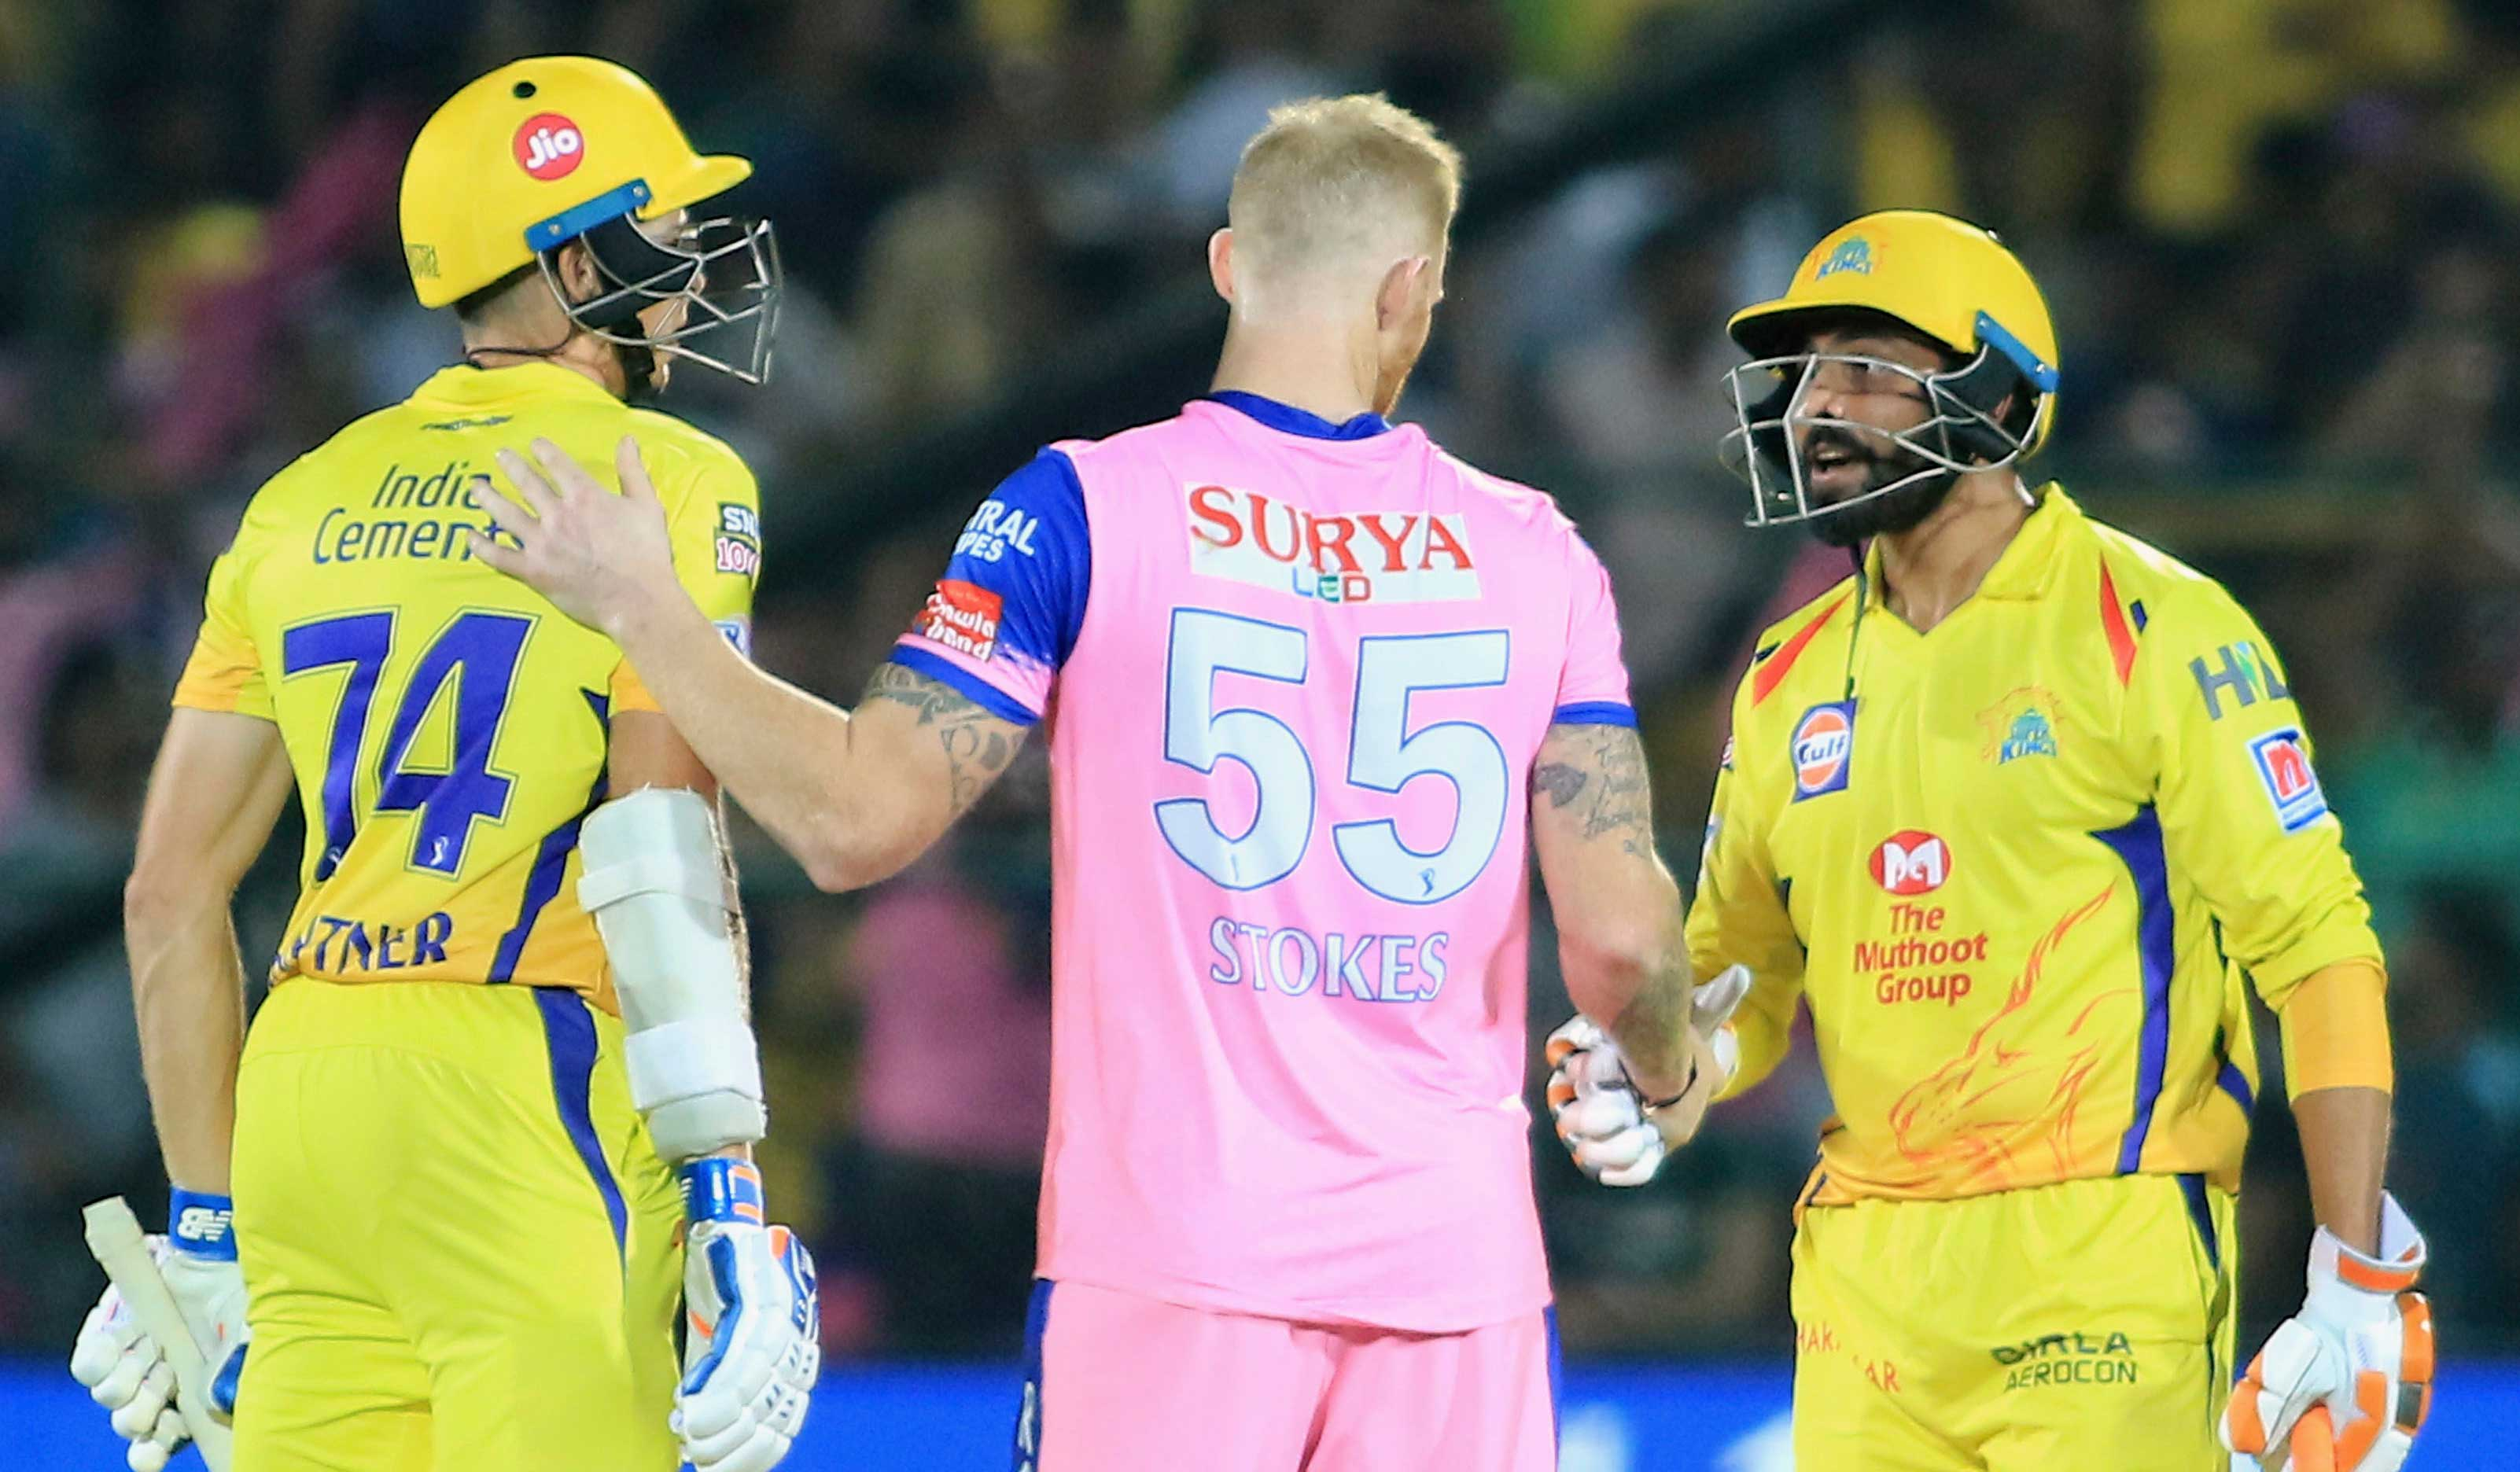 Chennai Super Kings' Ravindra Jadeja, right, and Mitchell Santner, left, speak with Rajasthan Royals' Ben Stokes during the IPL T20 cricket match between their teams in Jaipur on Thursday, April 11, 2019